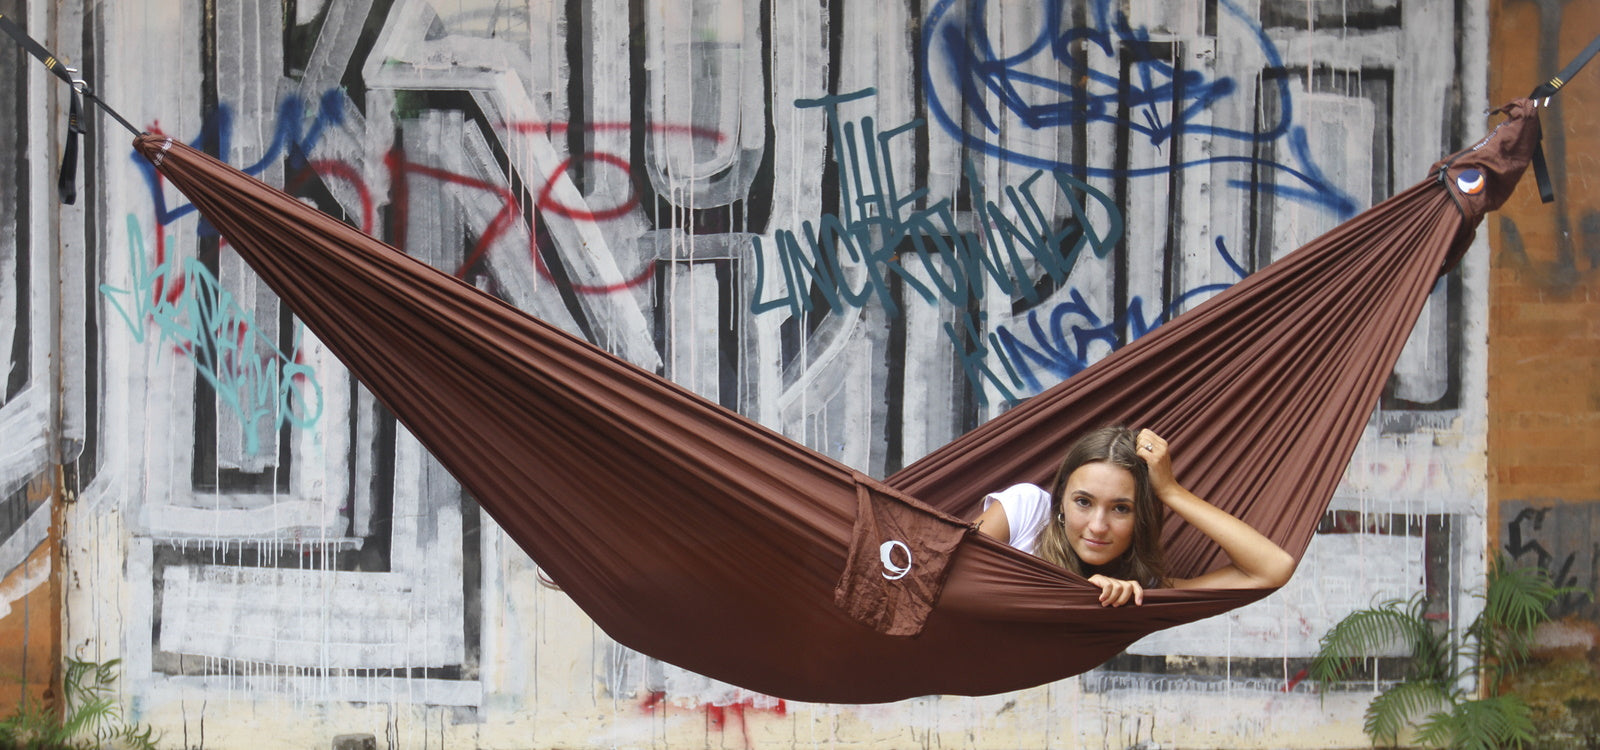 New to The Urban Gear - Ticket to the Moon - Shop Hammocks